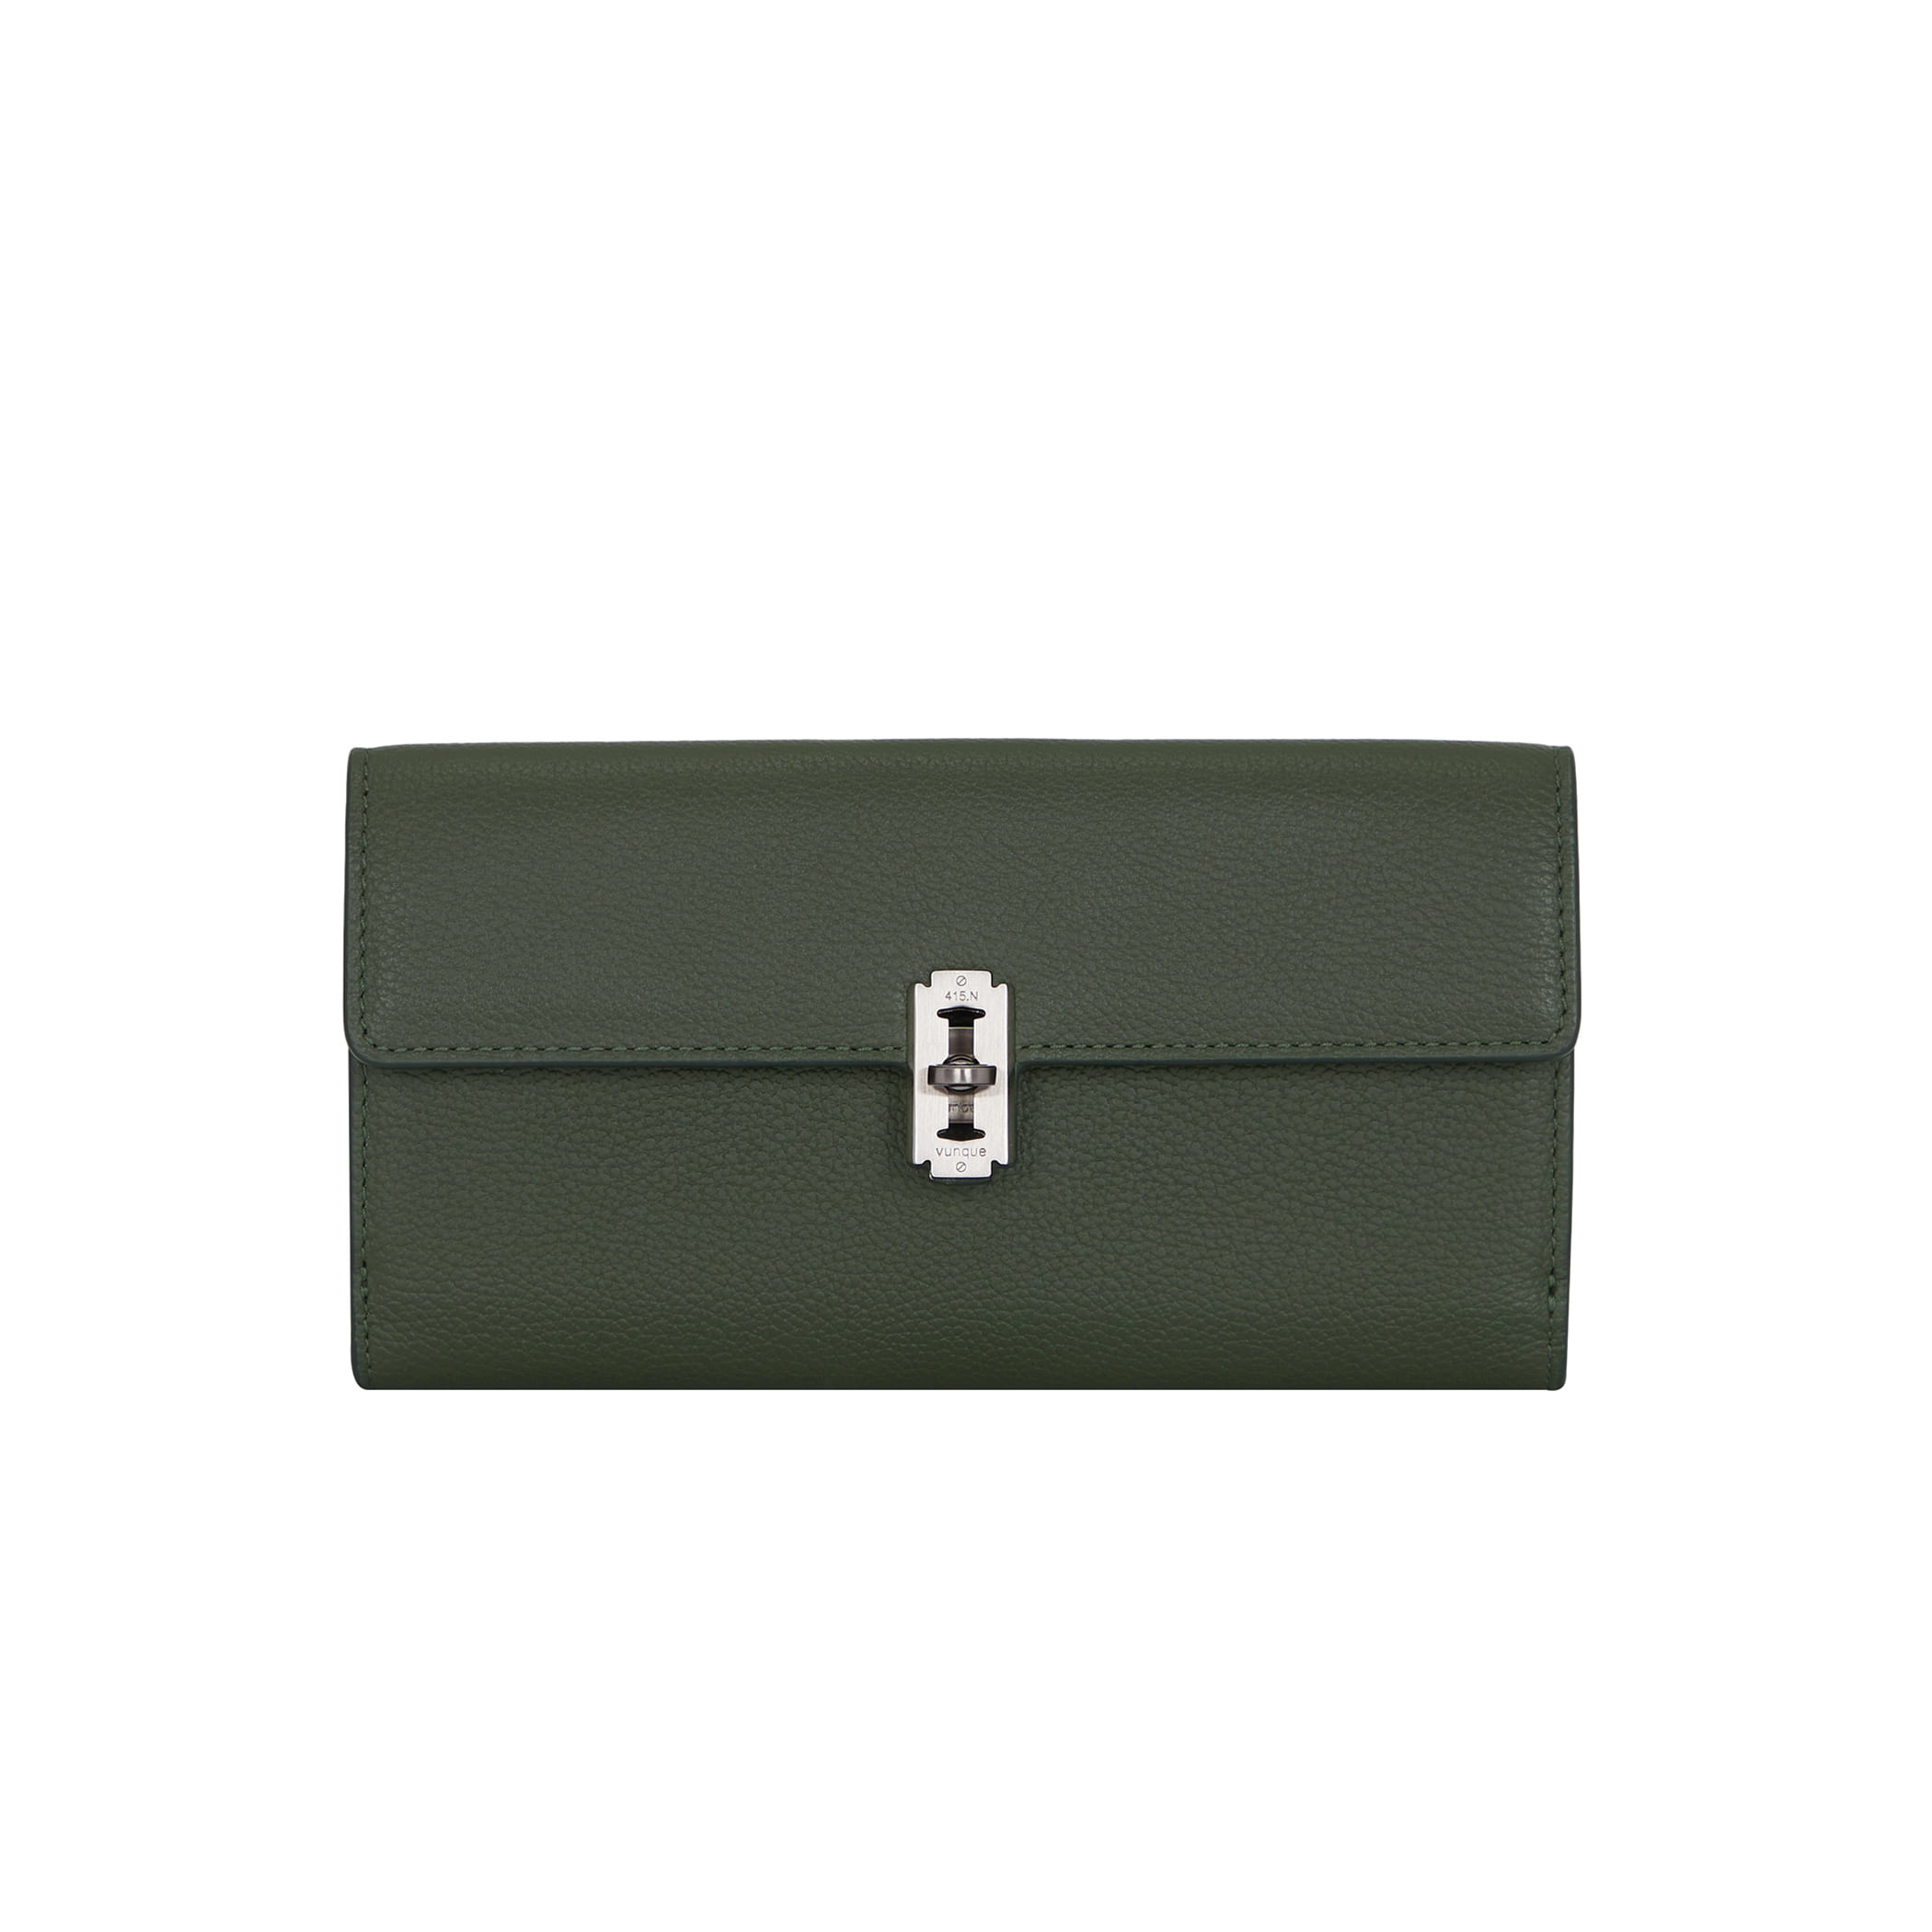 Perfec folded long wallet (퍼펙 2단 장지갑) Khaki